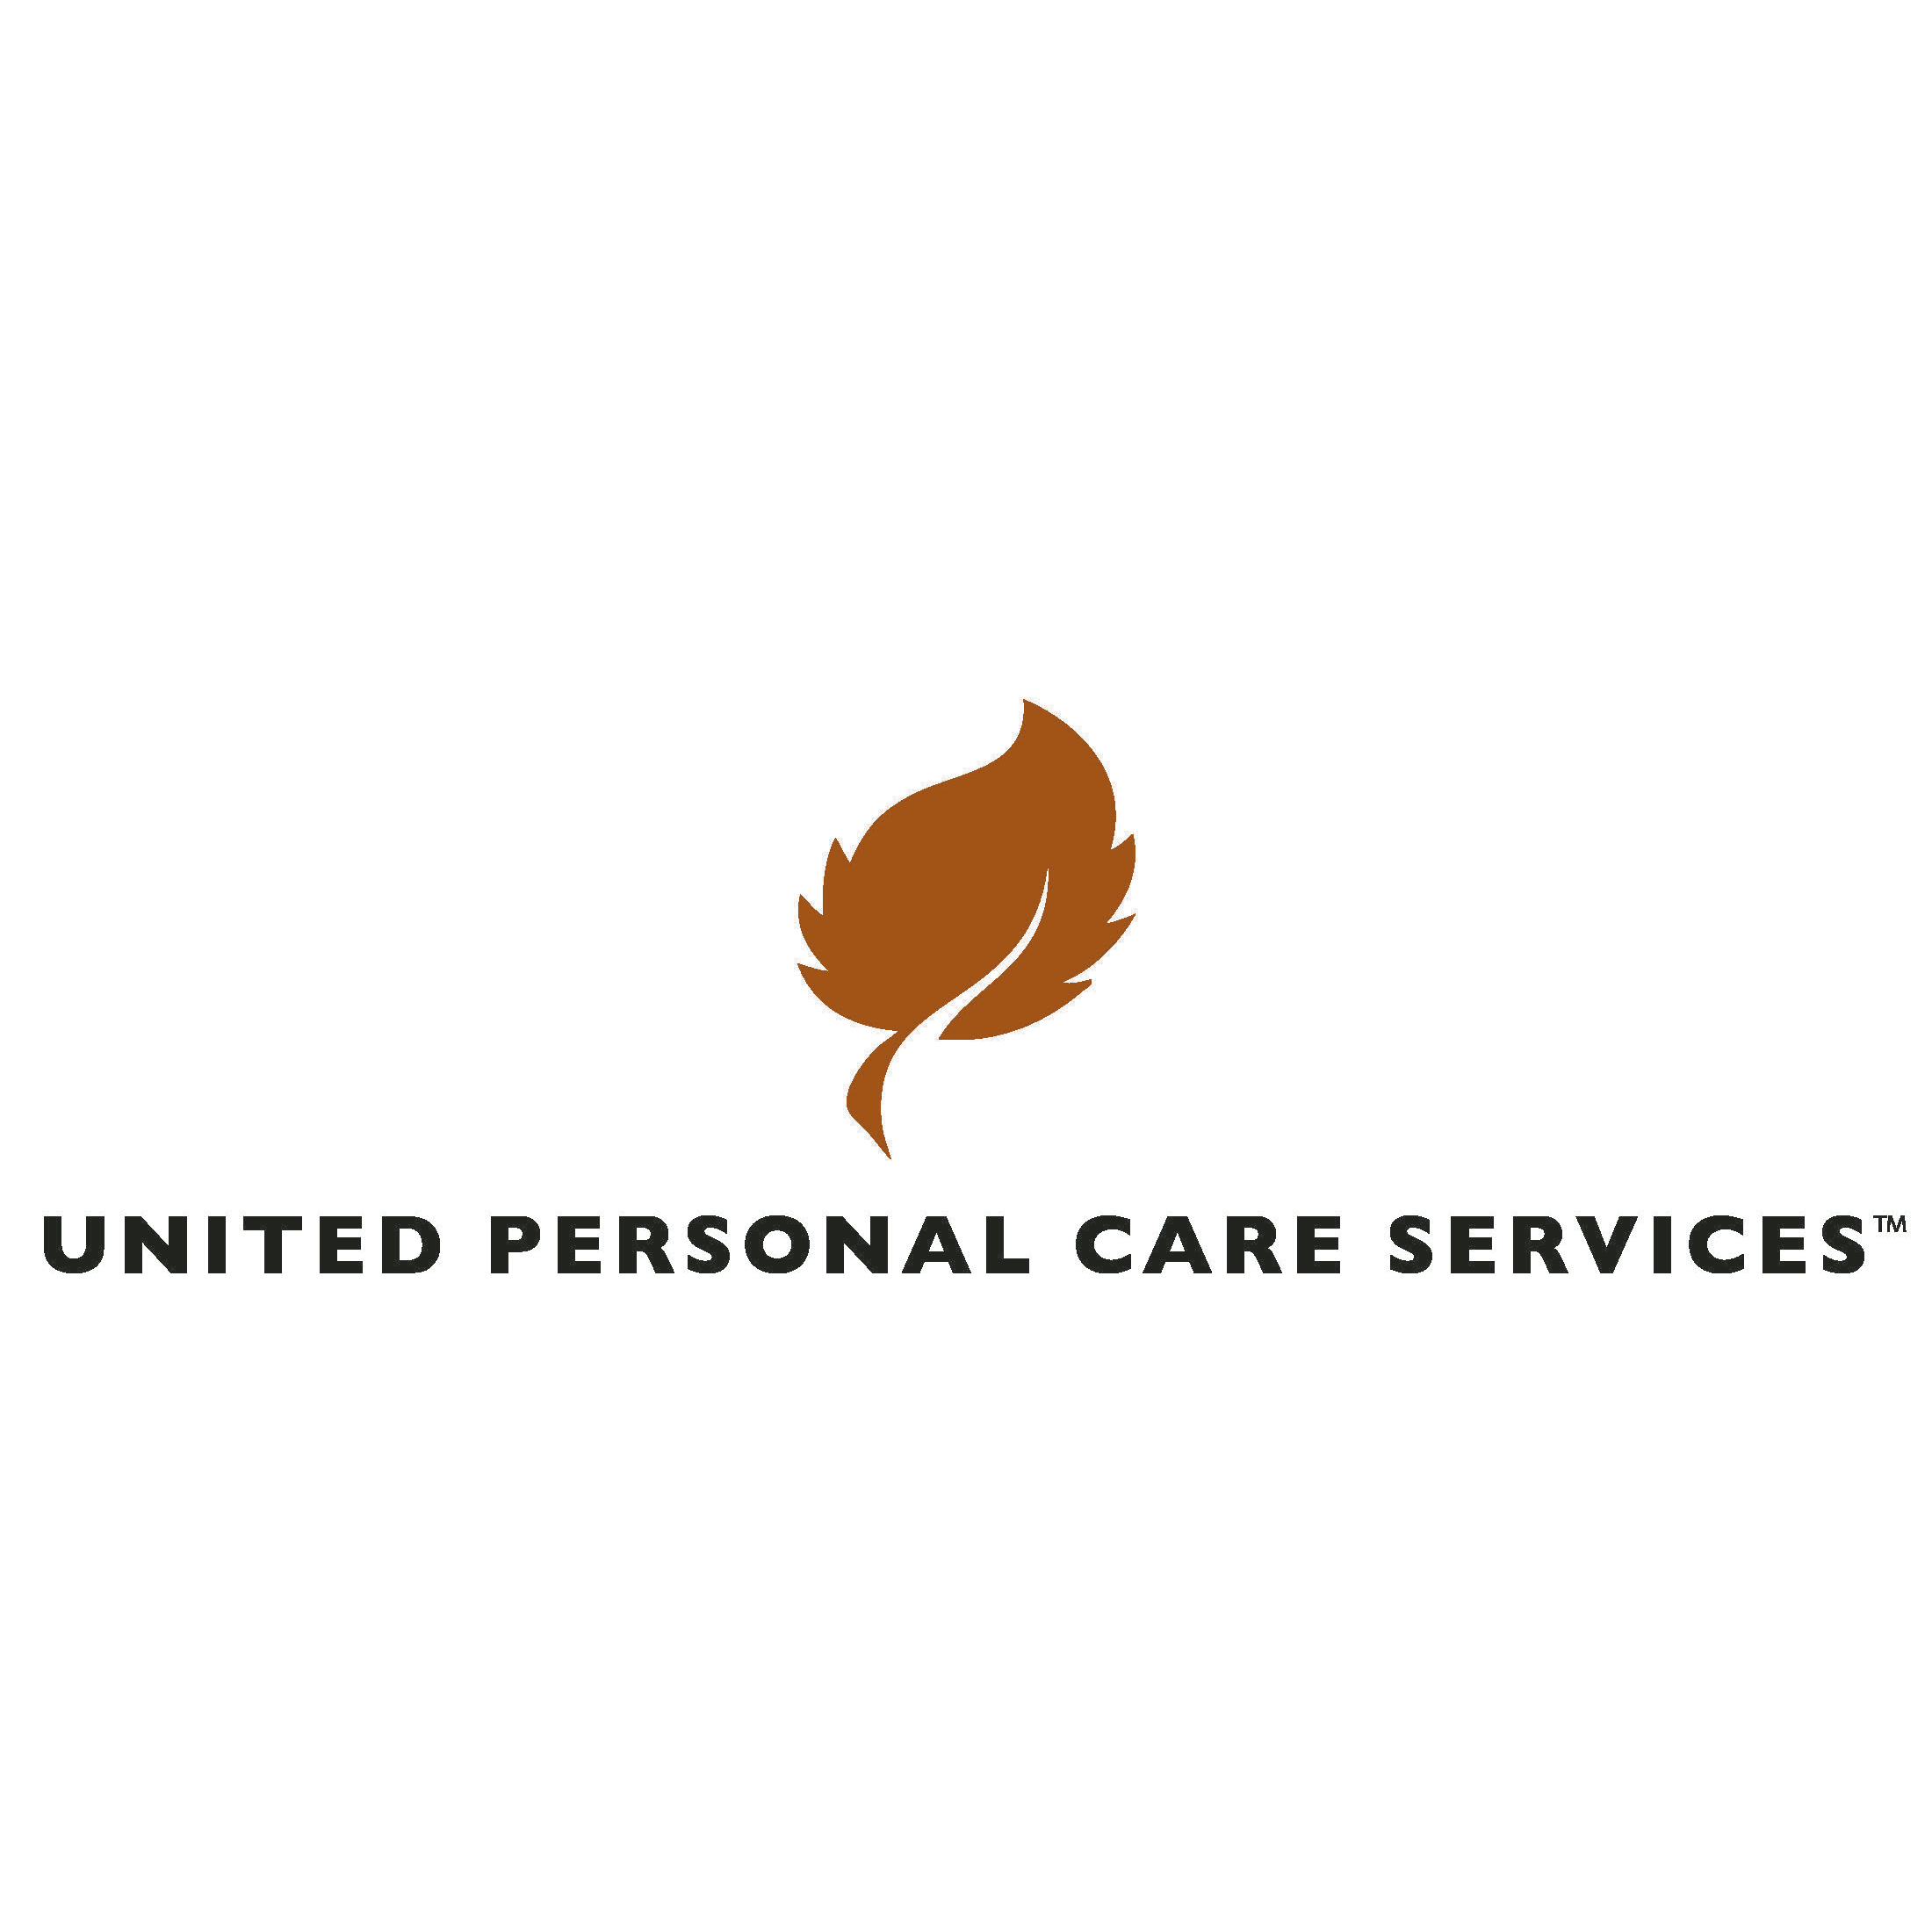 United Personal Care Services - ad image